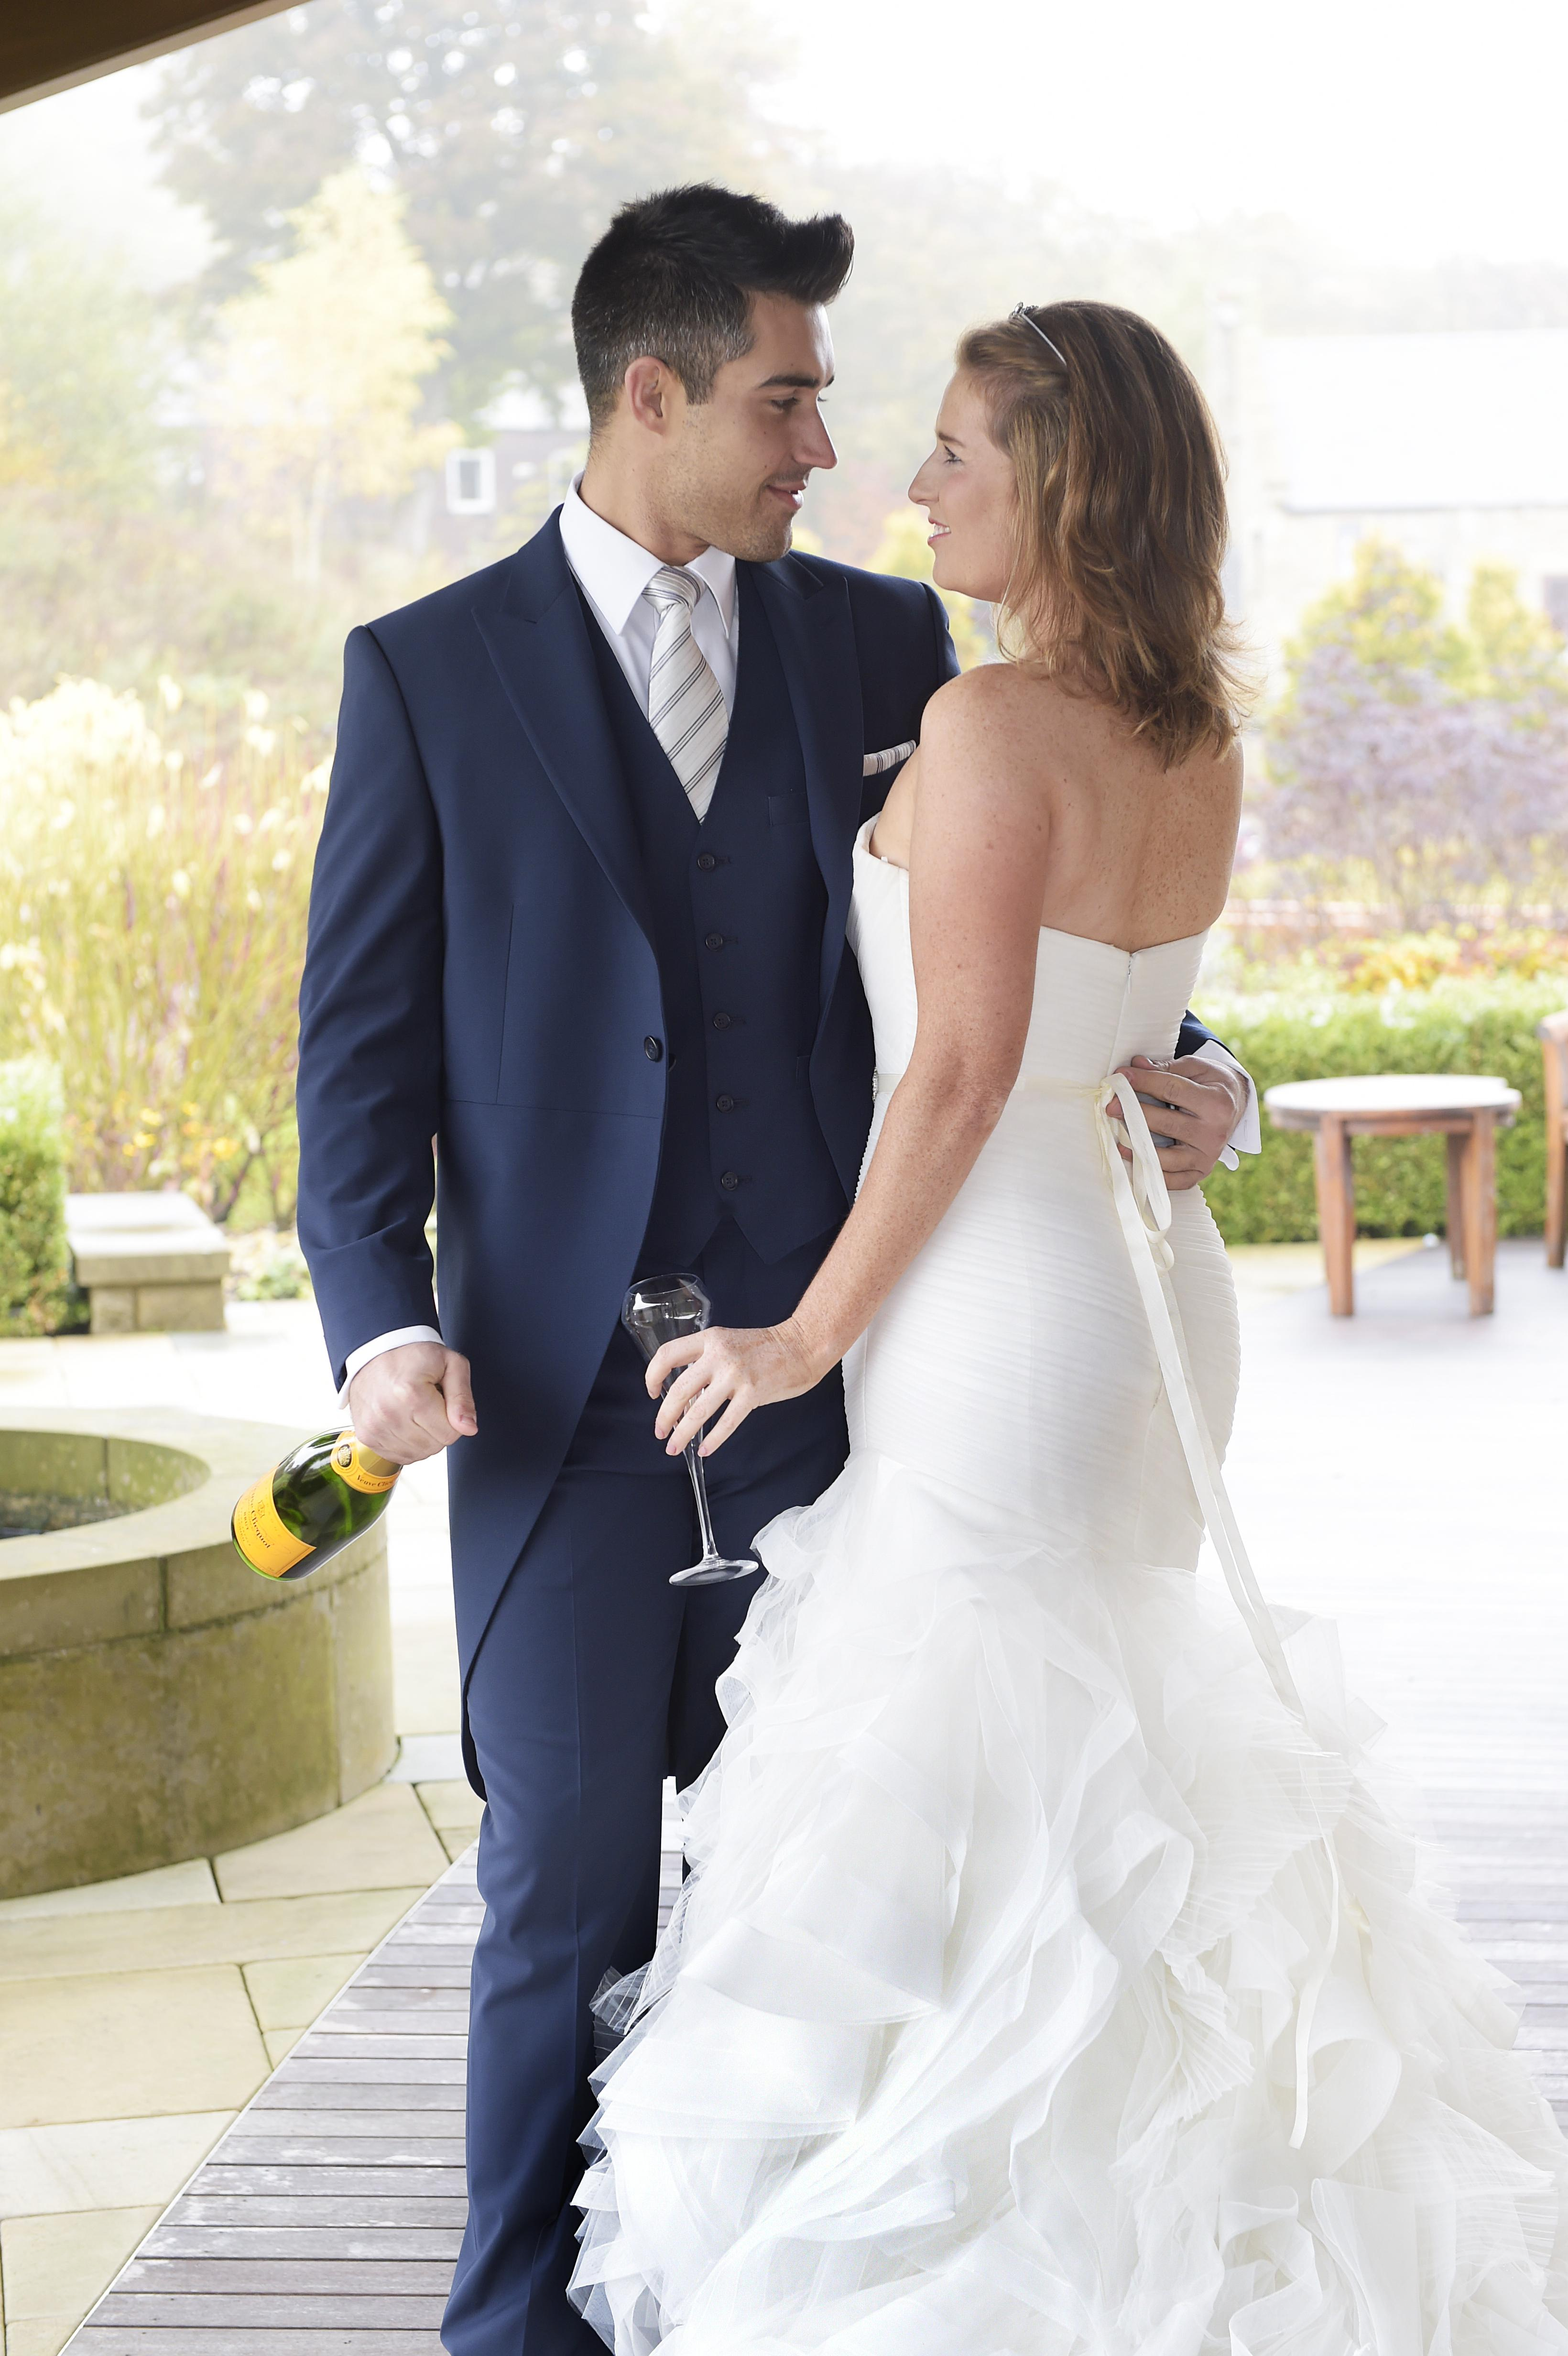 Navy Blue Tails with matching waistcoat